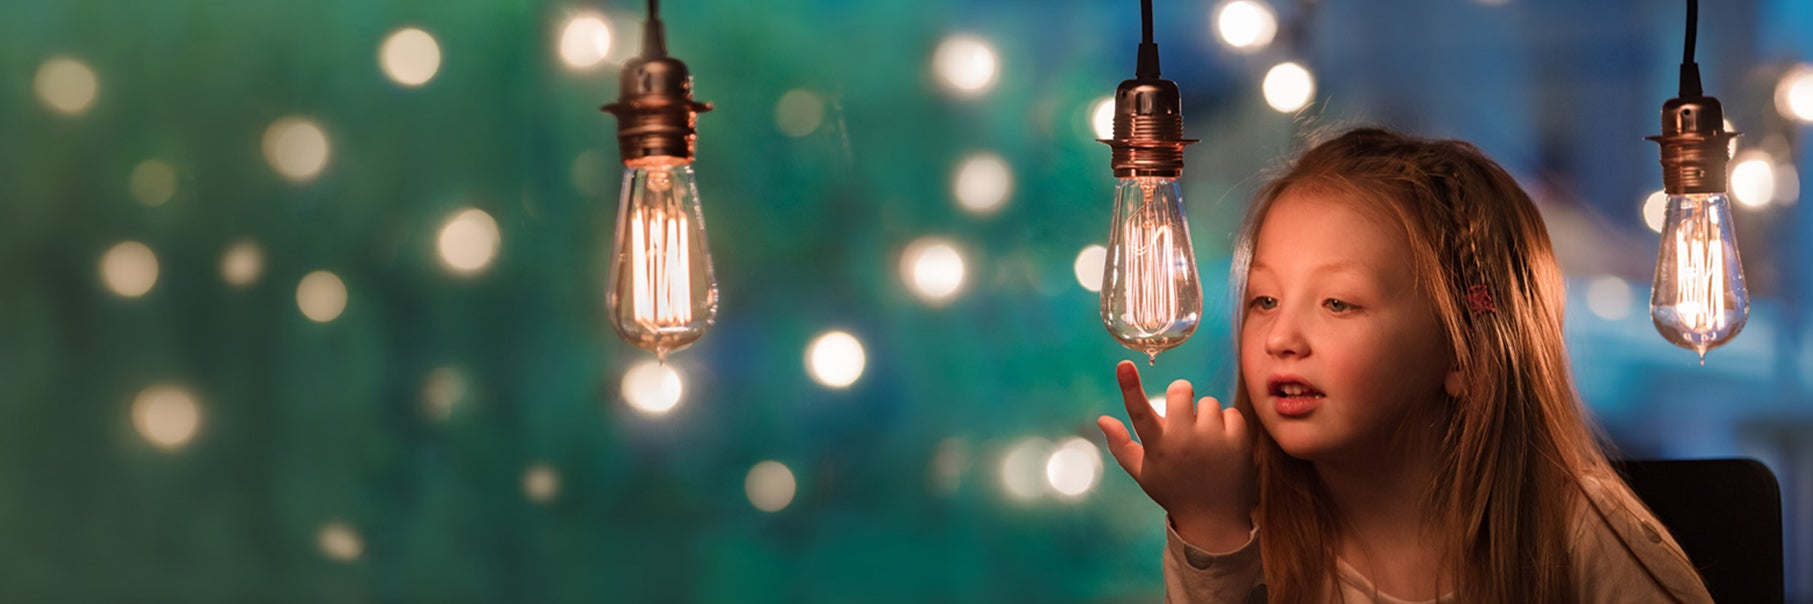 Young child looking at lightbulb